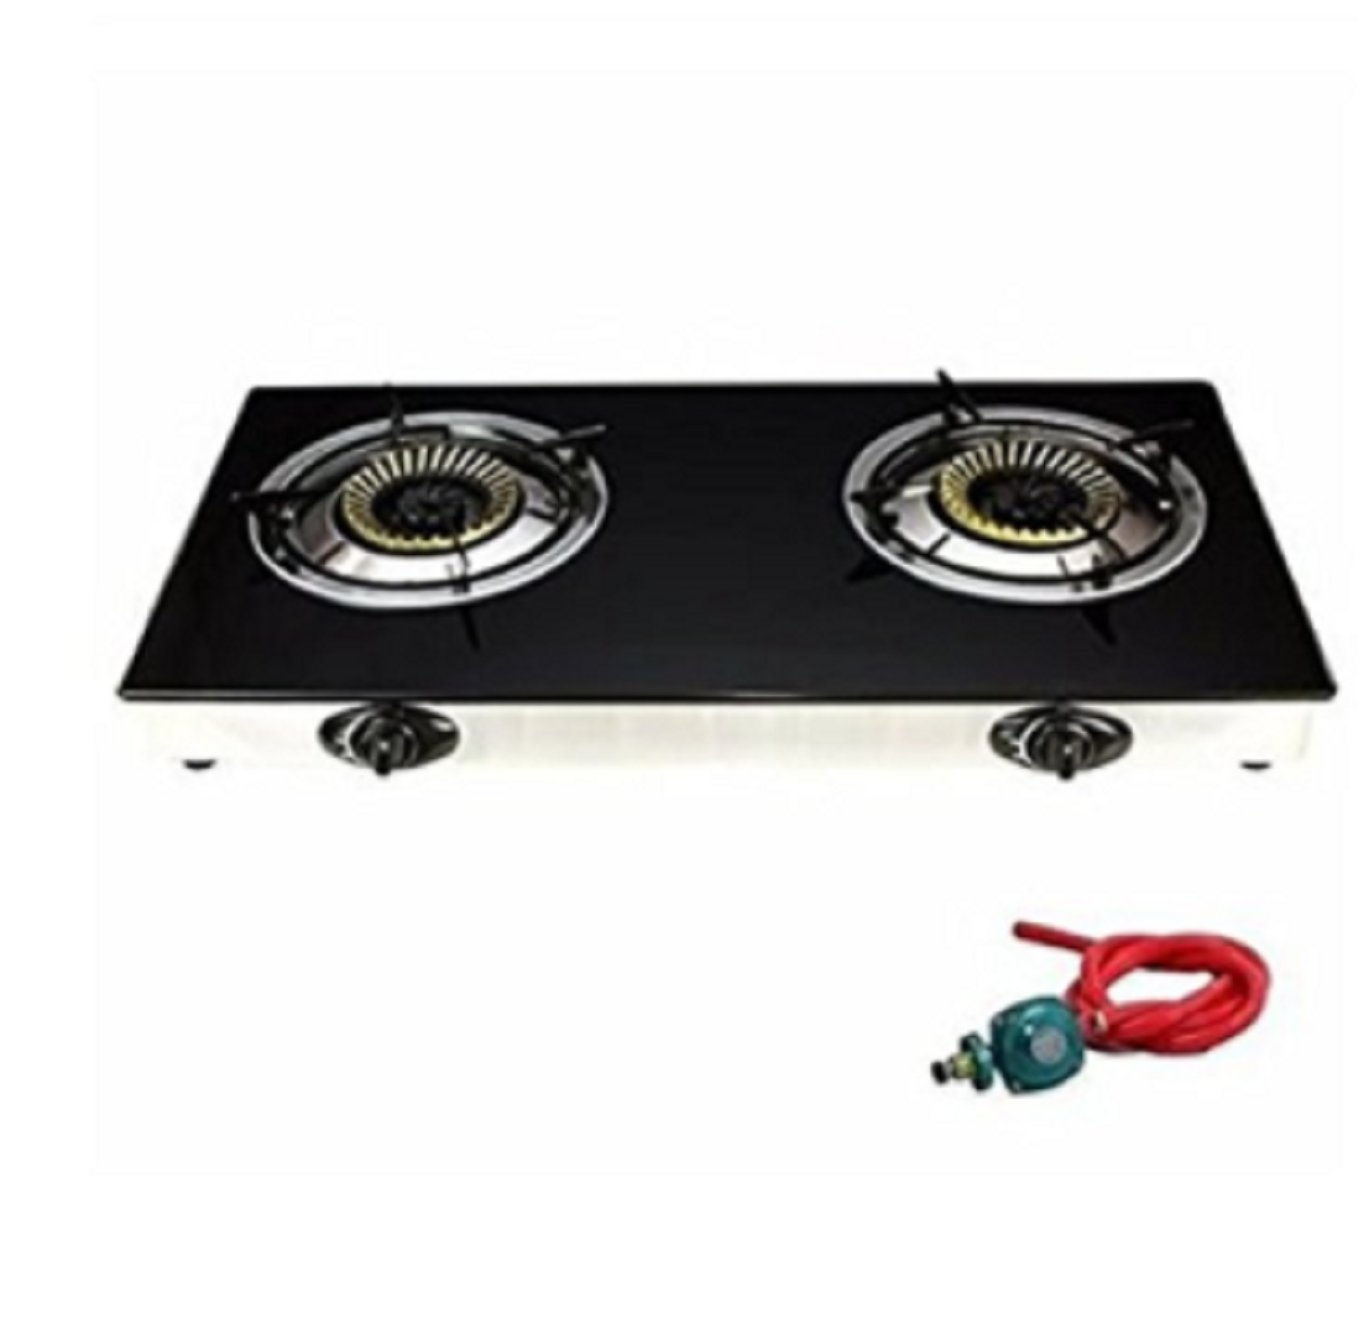 USA Premium Store 2 Burner Stove Gas Propane Range Tempered Ignition Camping Outdoor Glass Cooktop